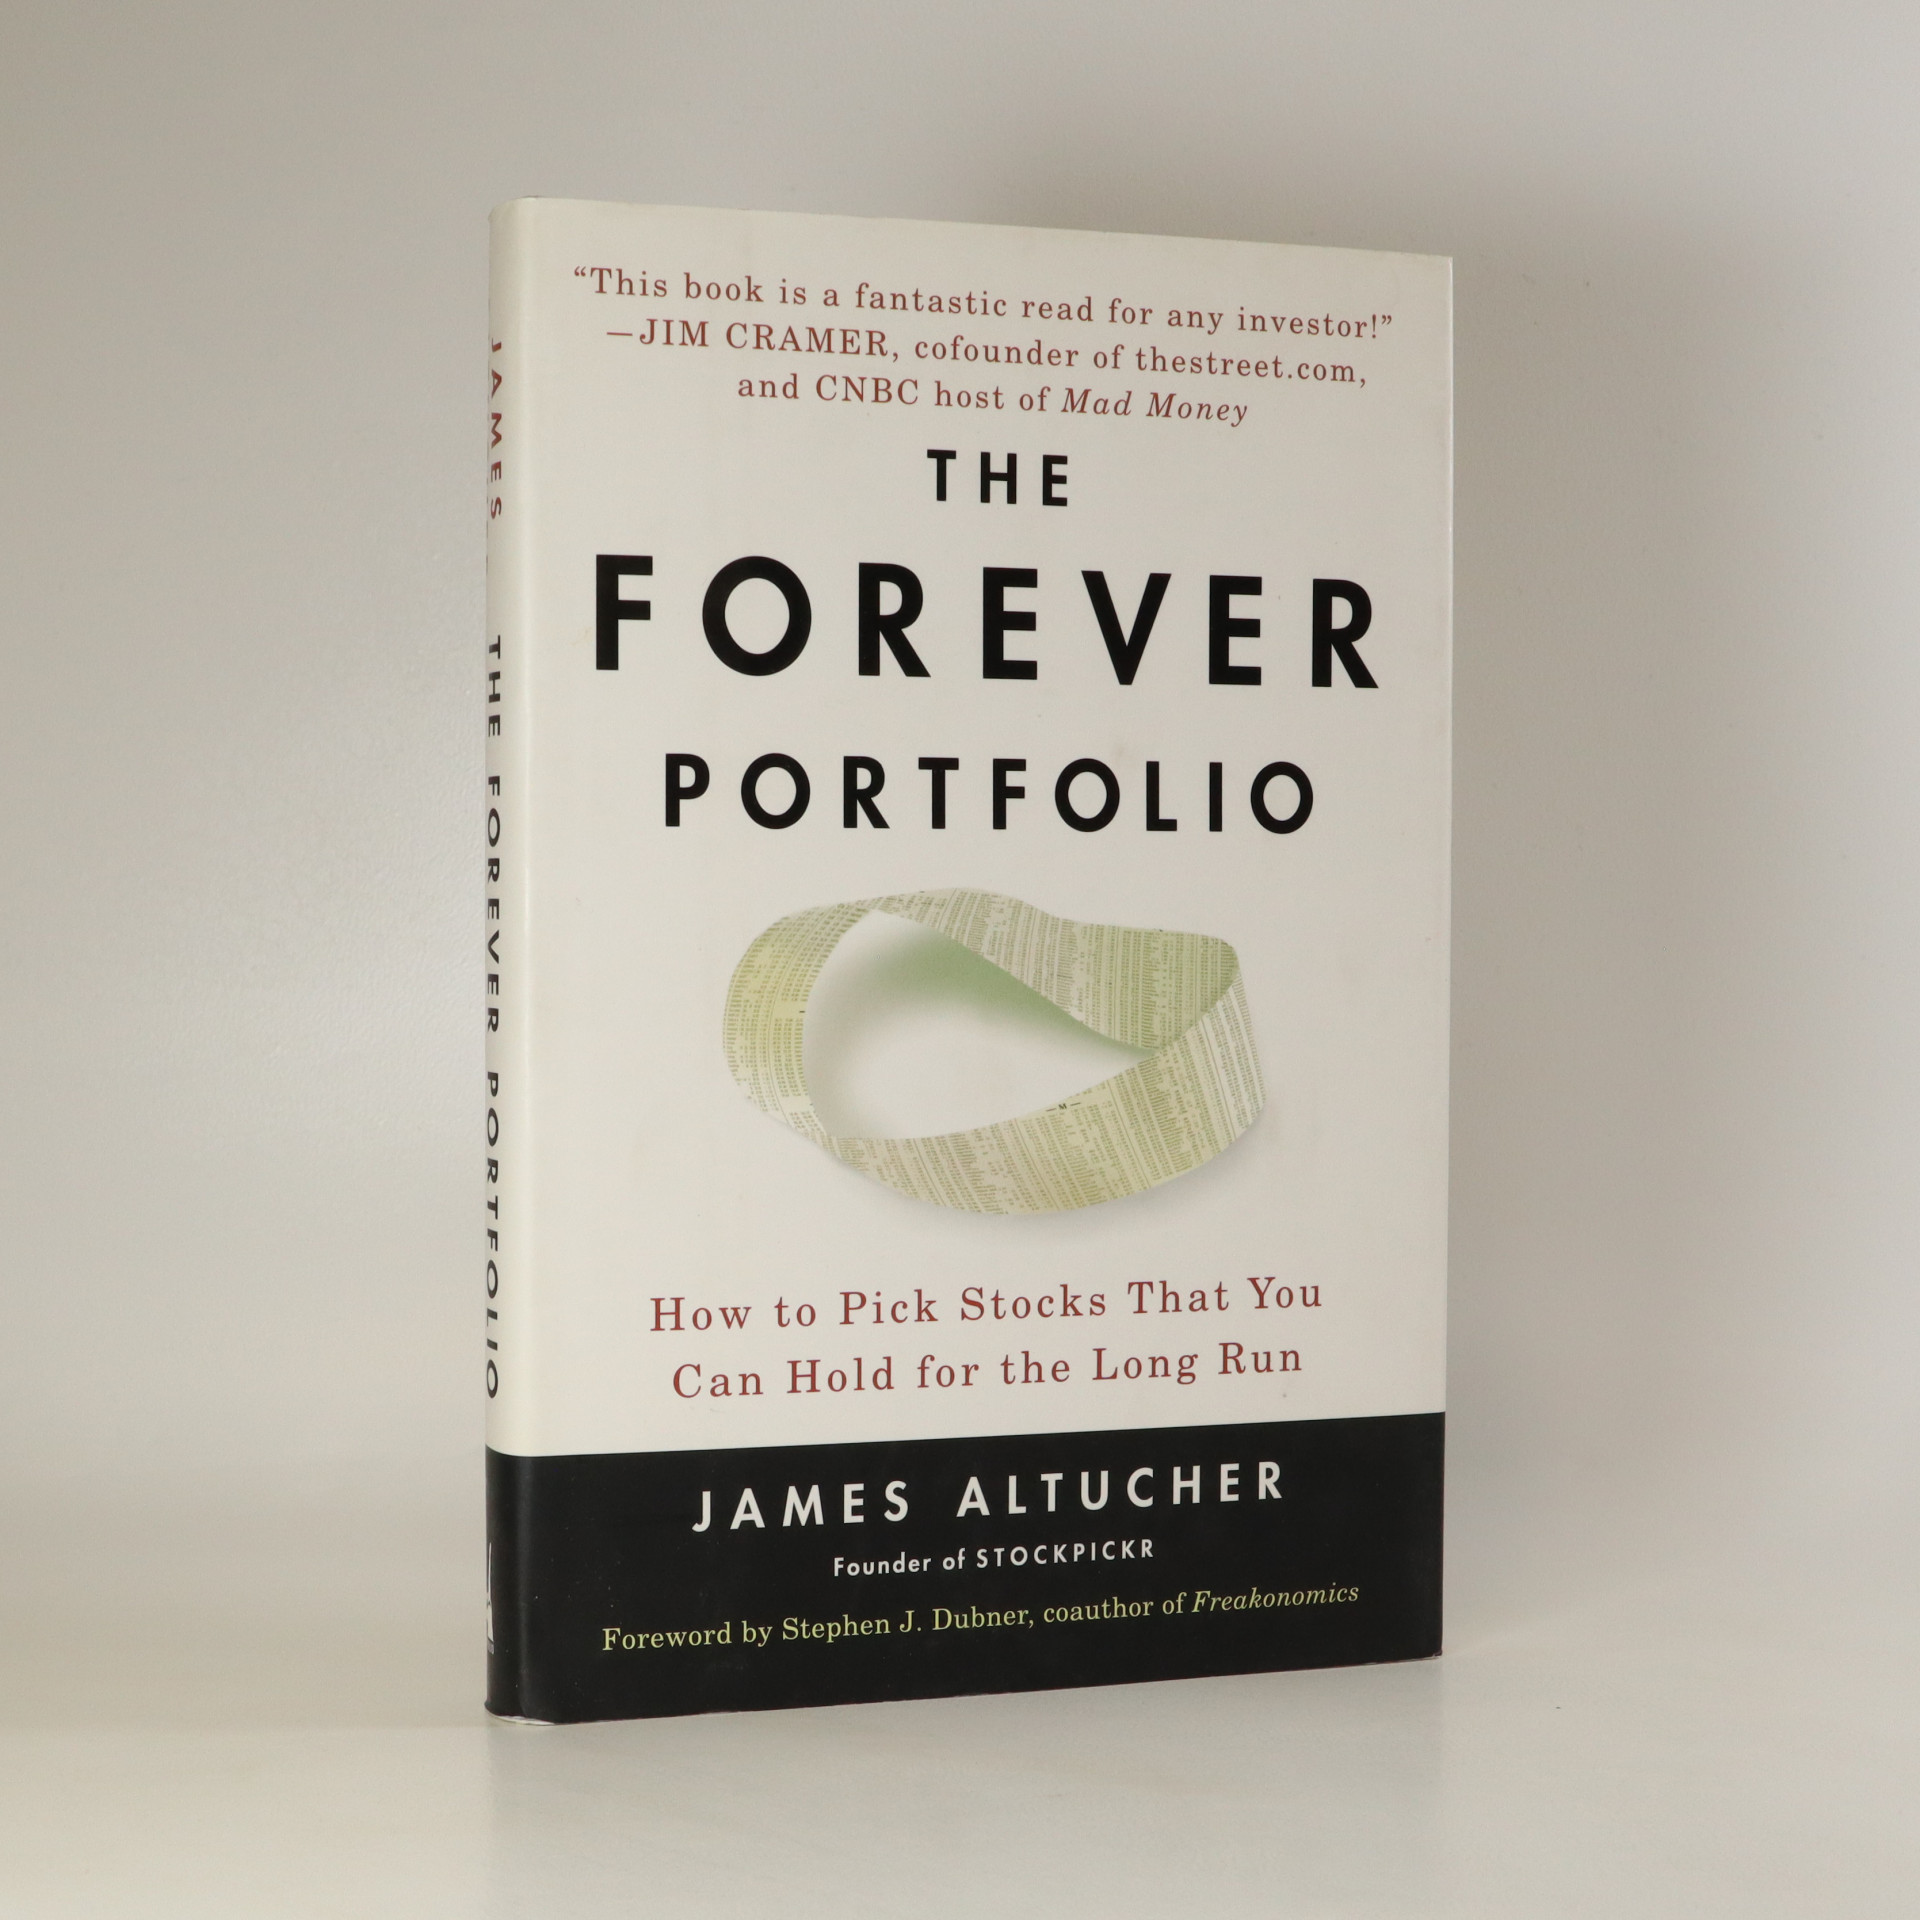 antikvární kniha The Forever Portfolio. How to Pick Stocks That You Can Hold for the Long Run, 2008